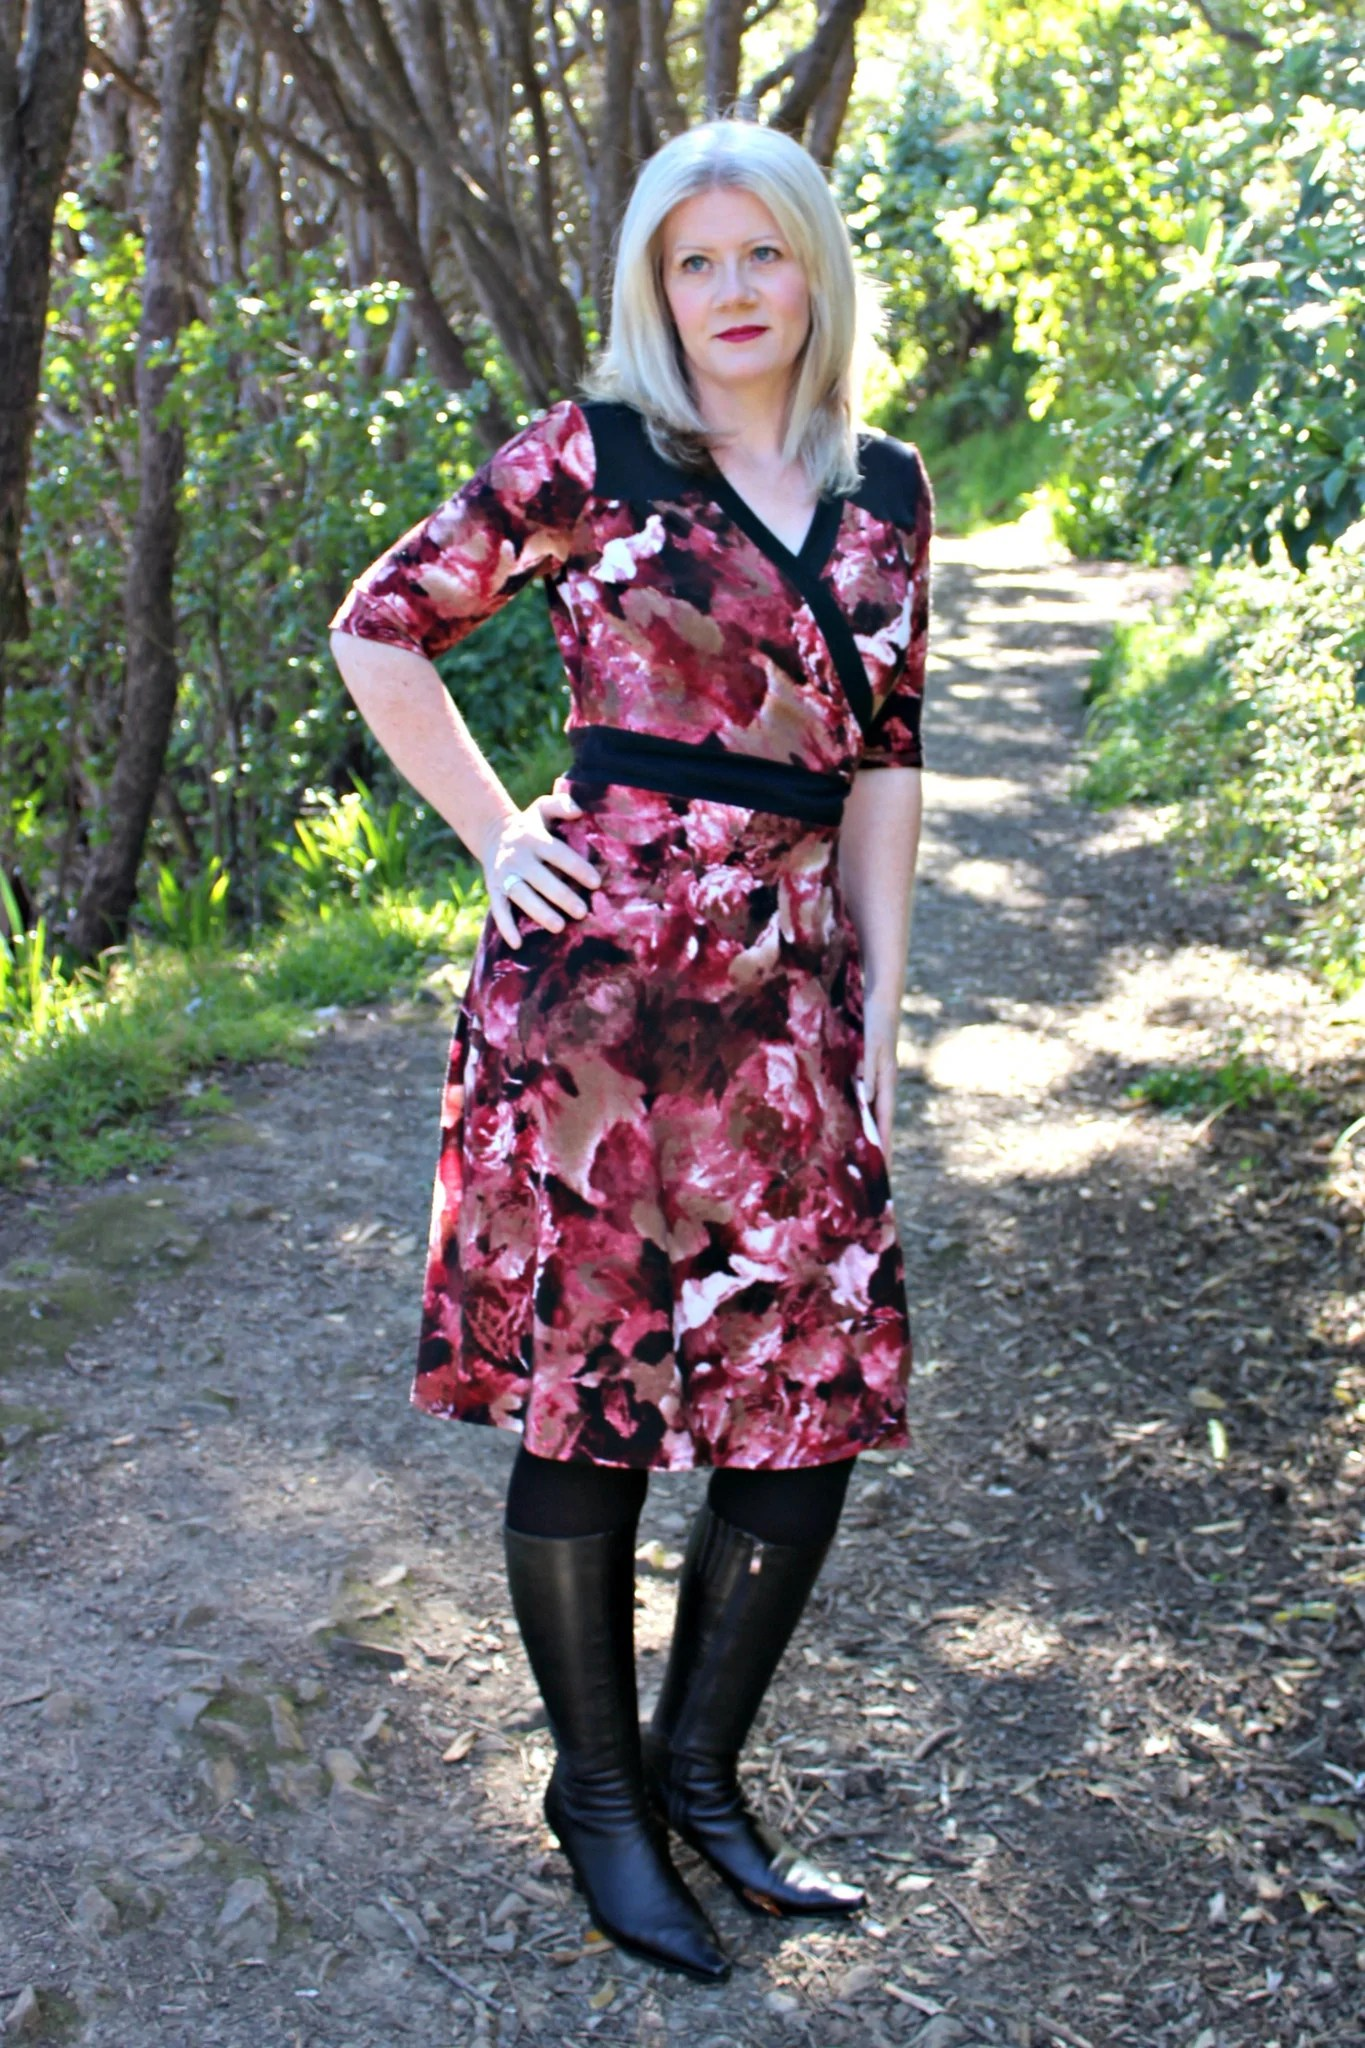 Gillian wrap dress from Muse Patterns